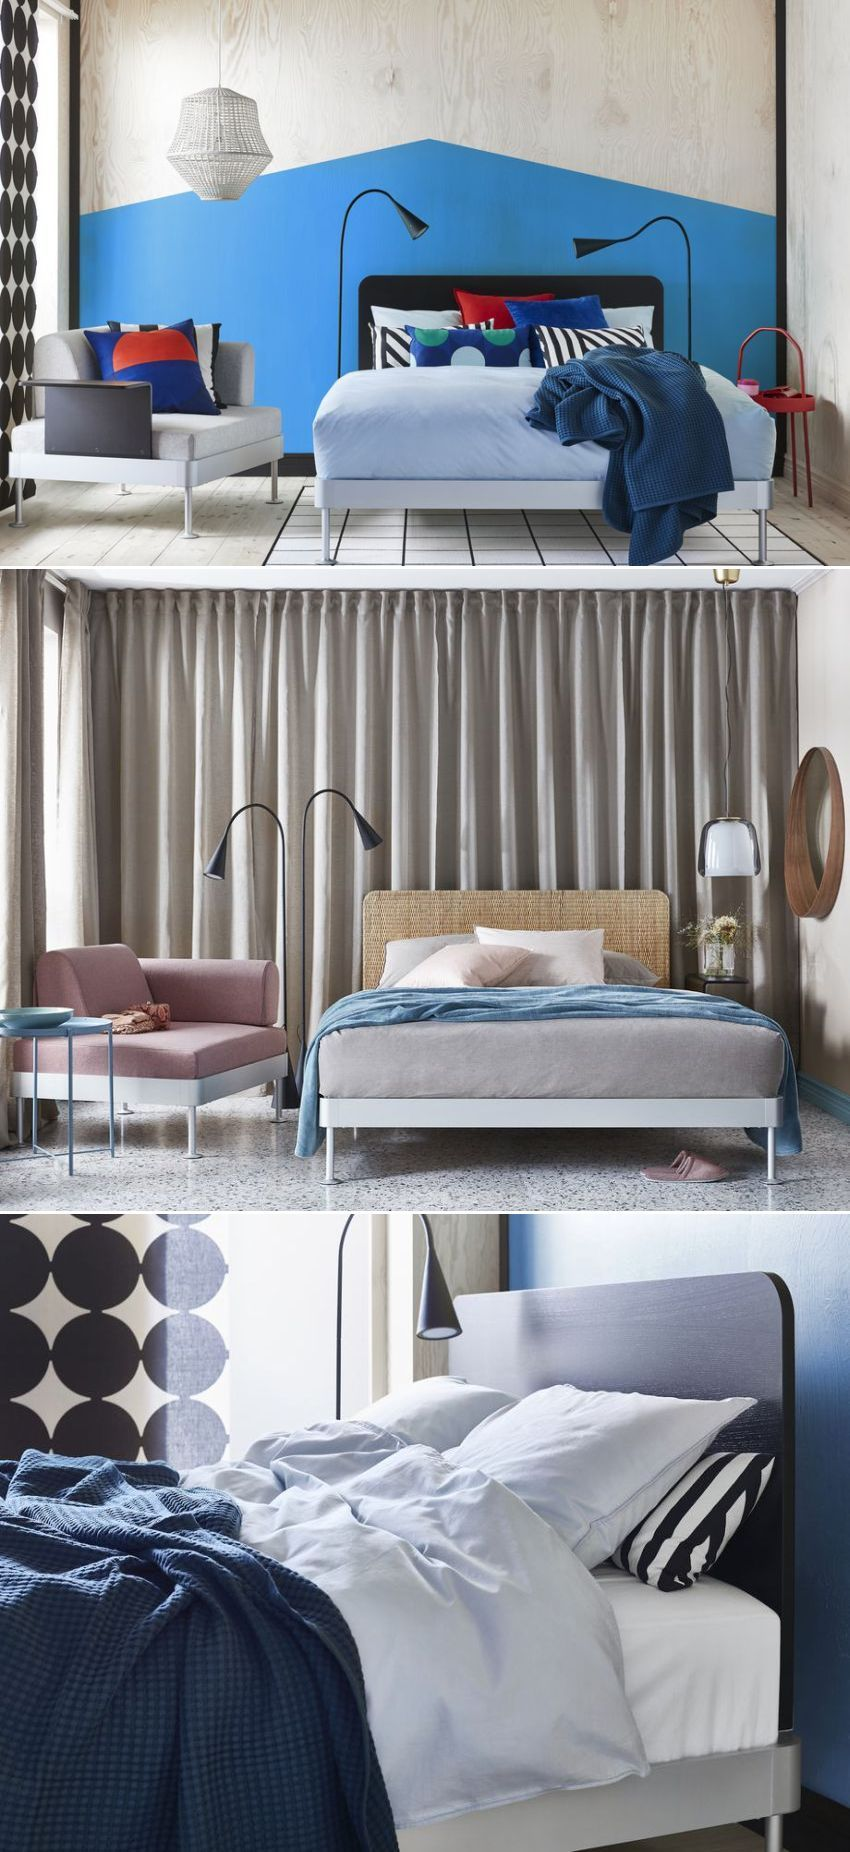 Ikea And Tom Dixon Release Delaktig Customizable Modular Bed Modular Bed Bed Furniture Design